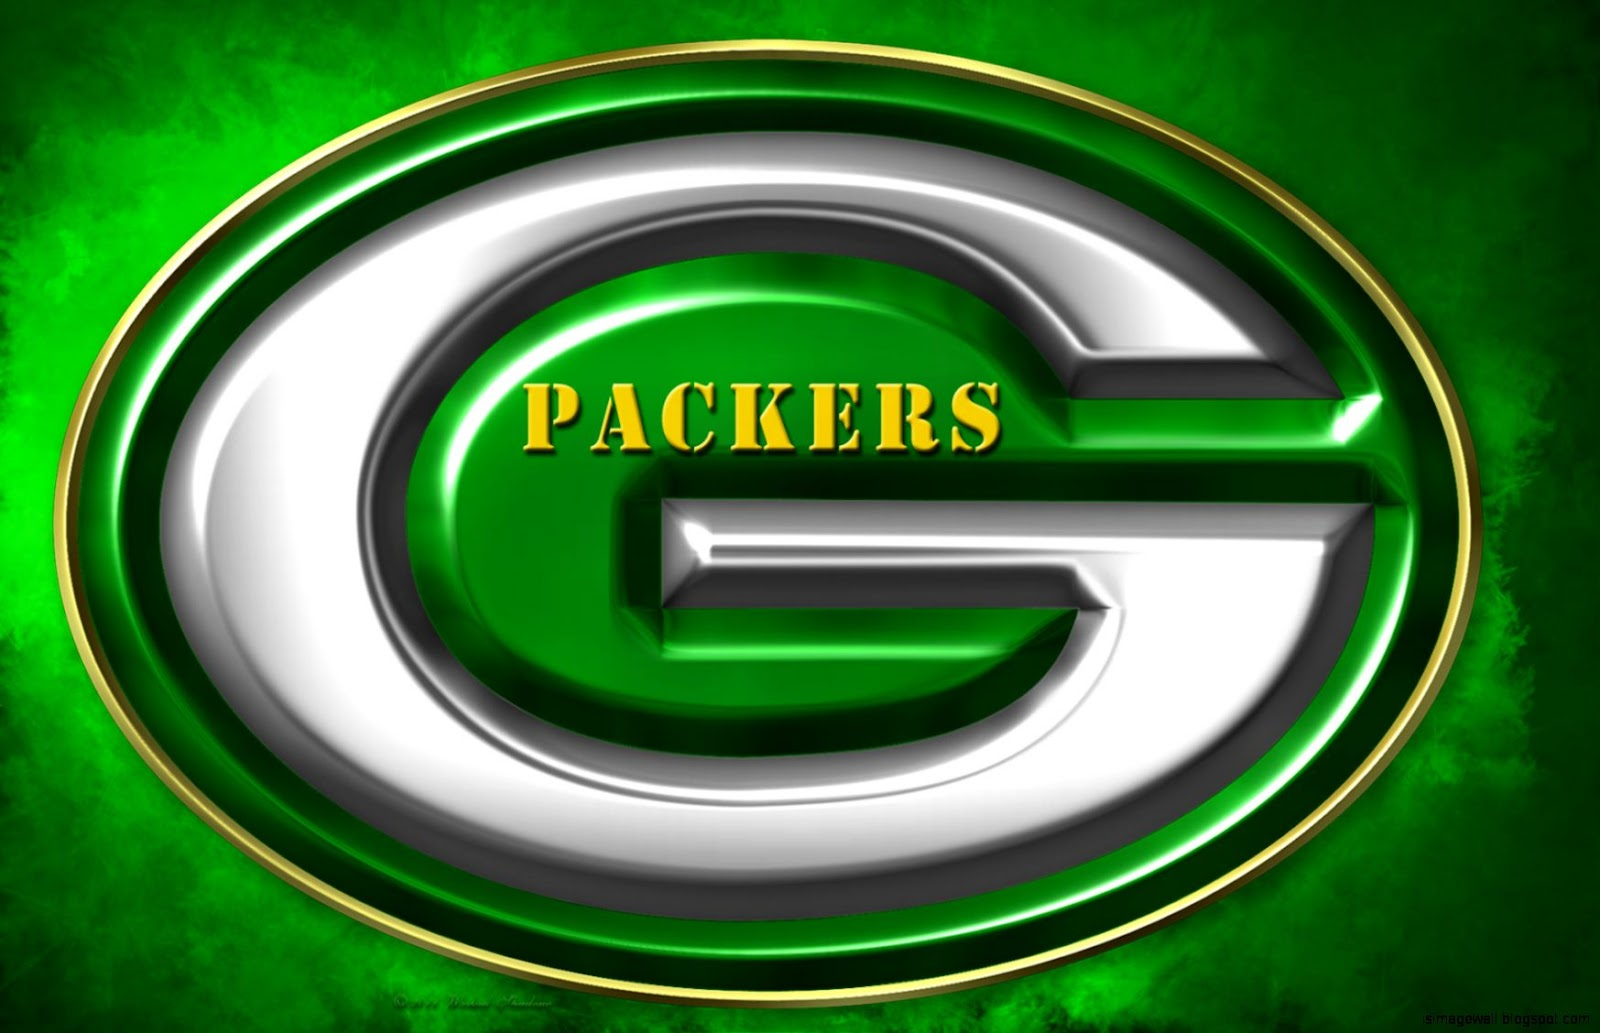 Green Bay Packers Wallpaper   Image Wallpapers